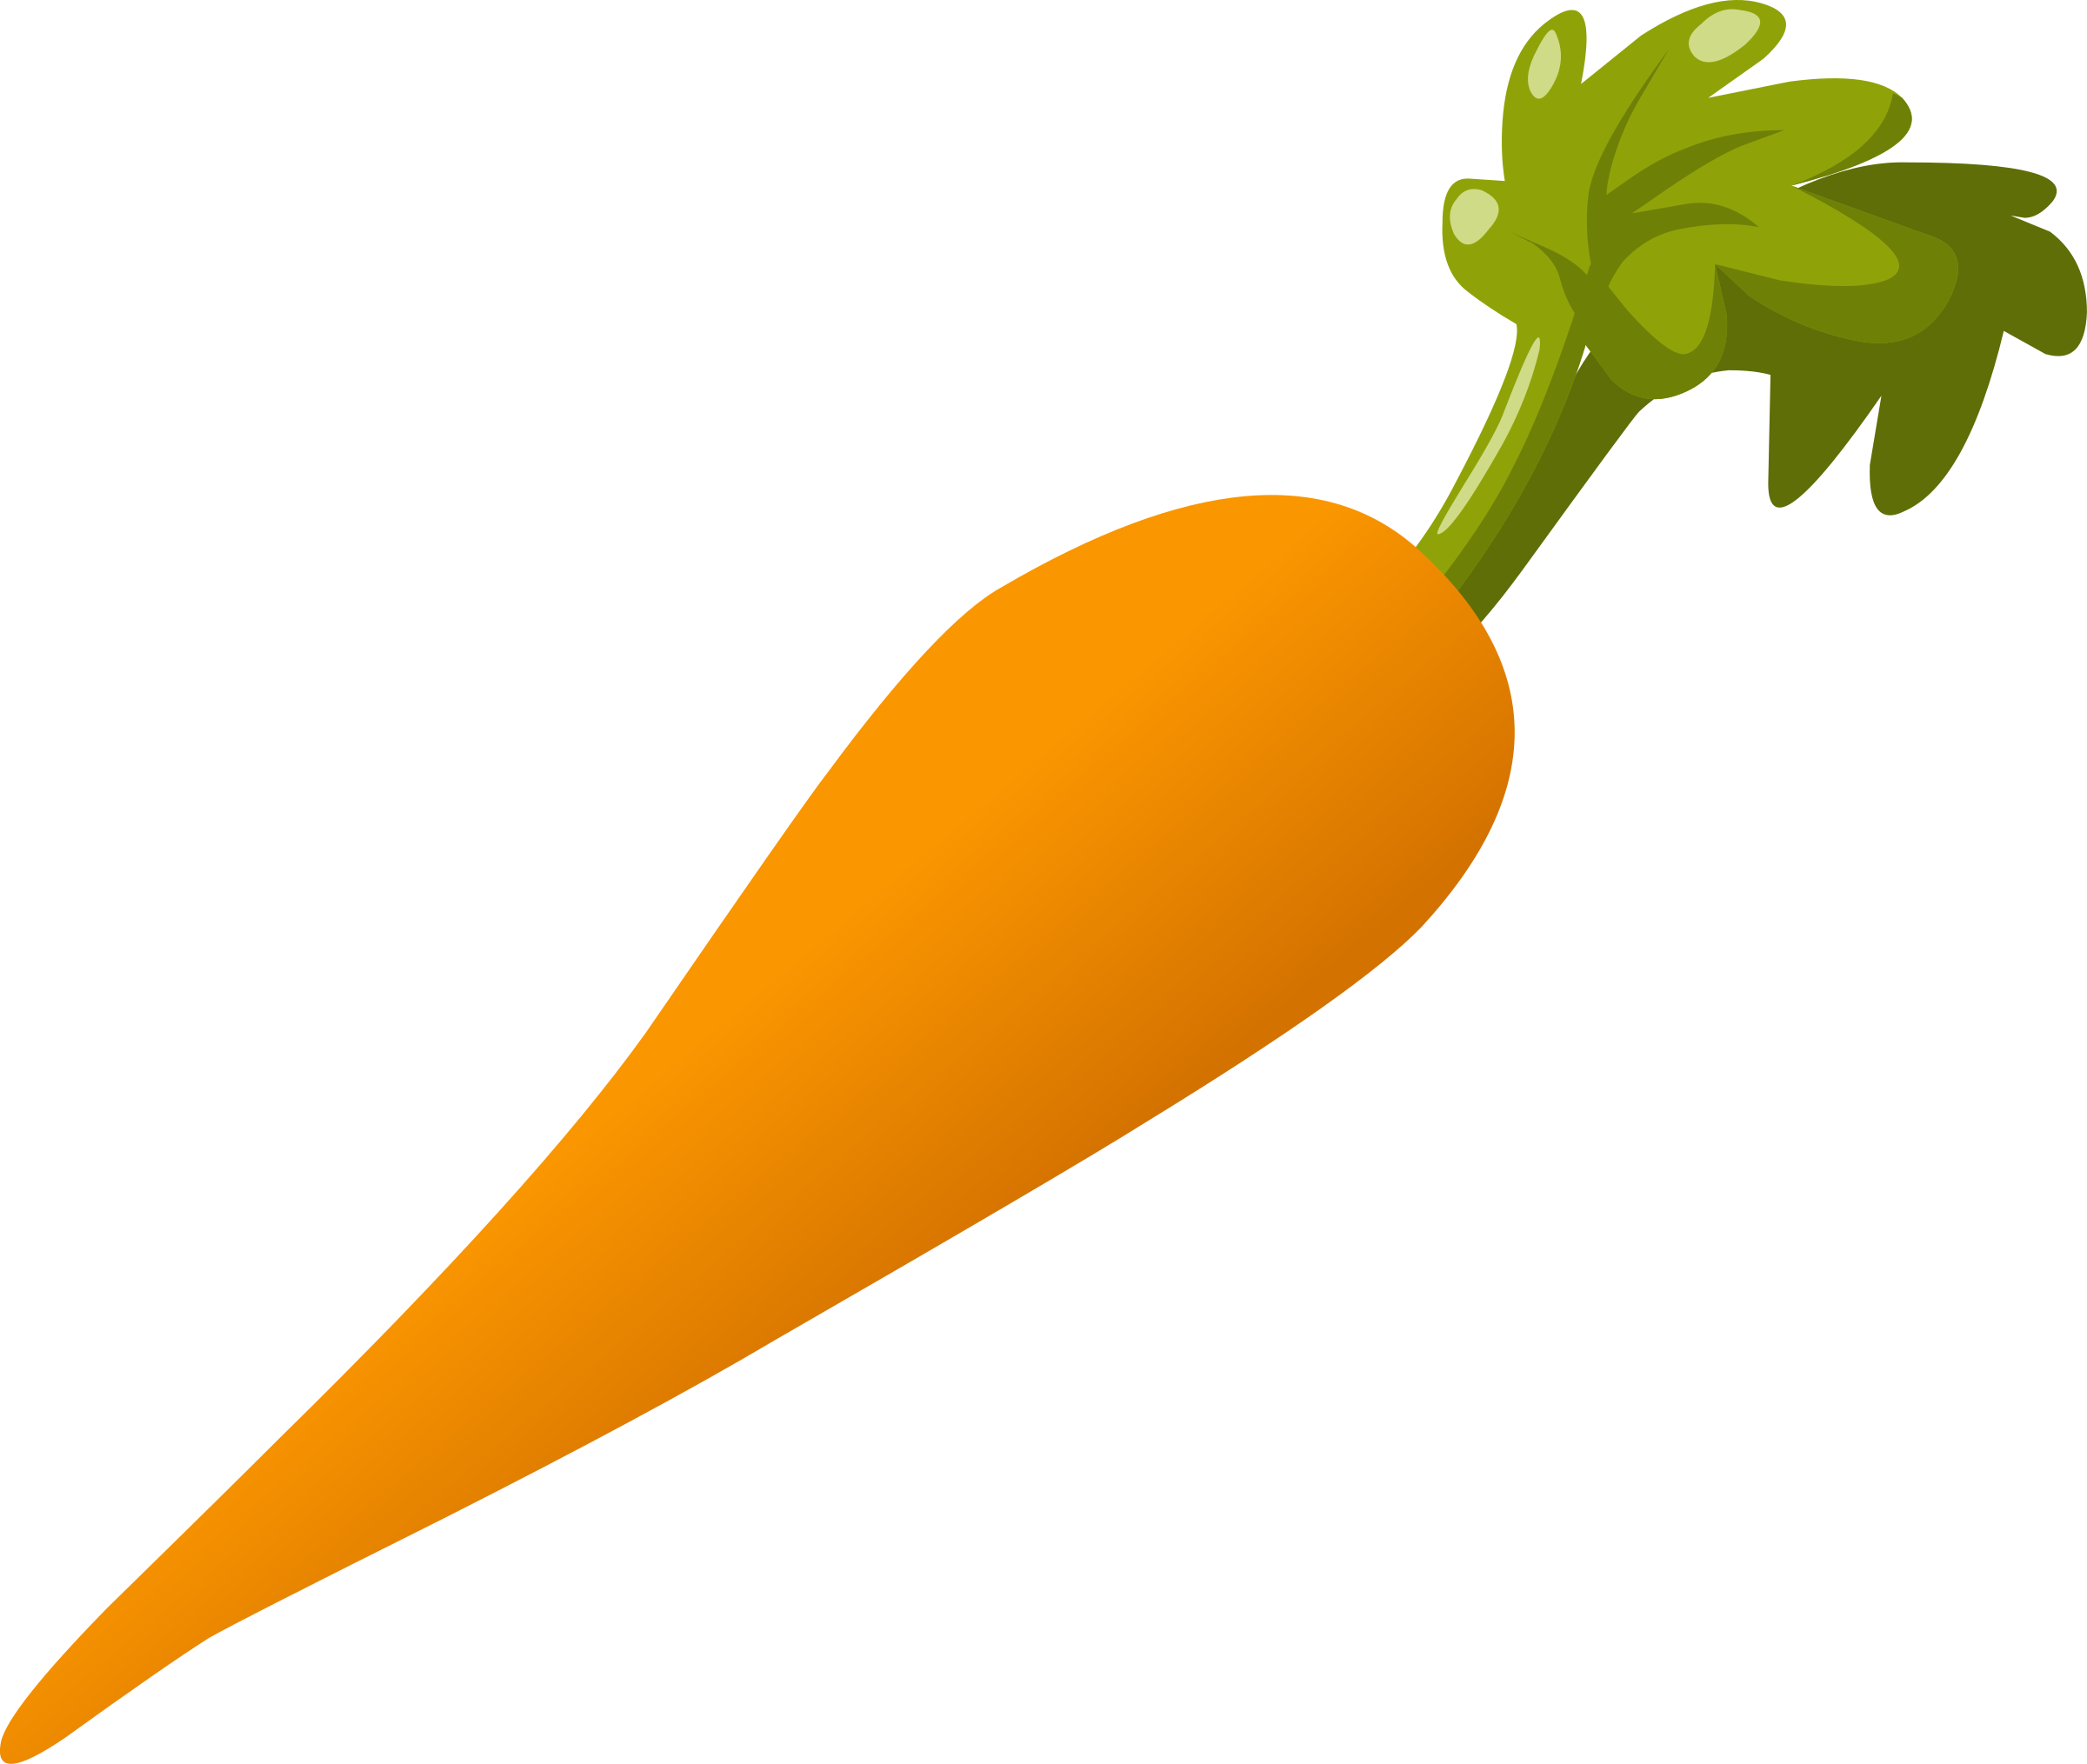 Clipart png carrot. Food big image